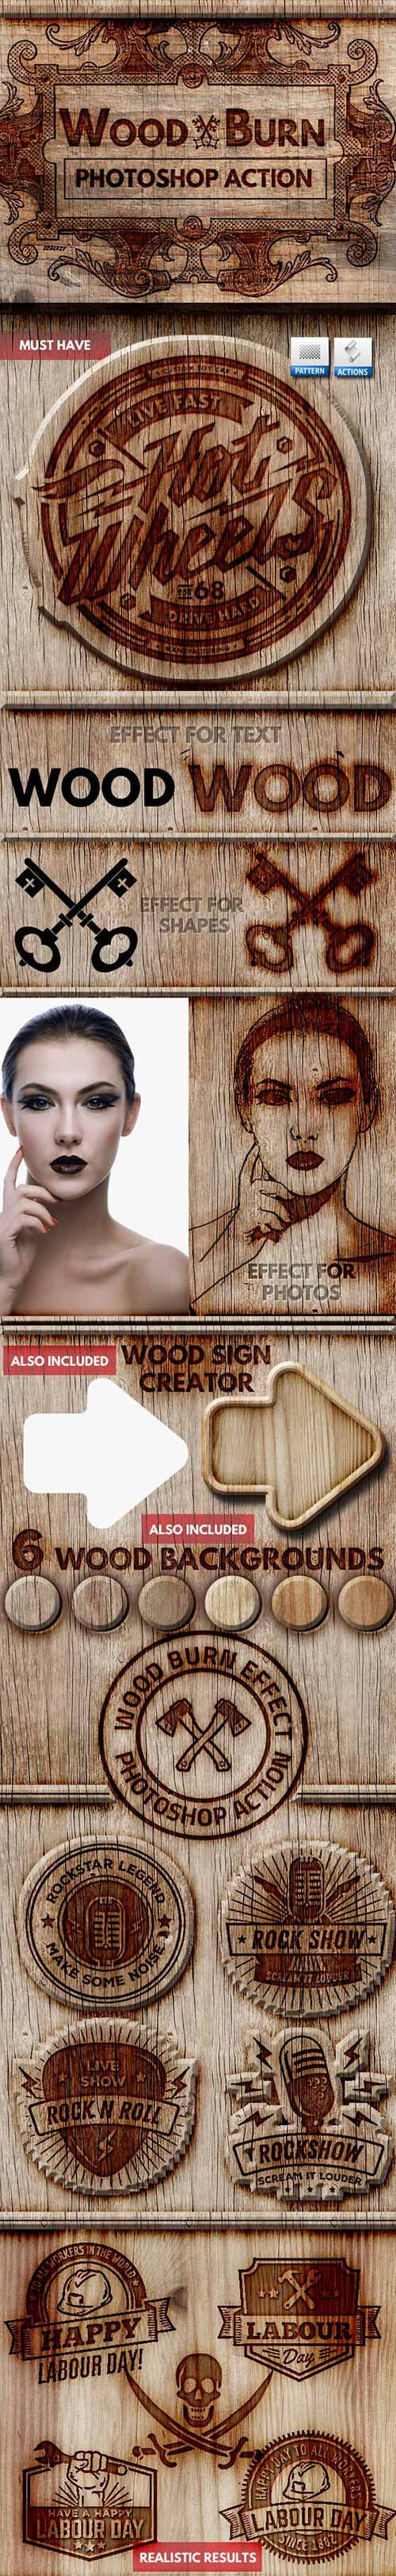 Graphicriver - Wood Burn Effect Photoshop Action 22089411